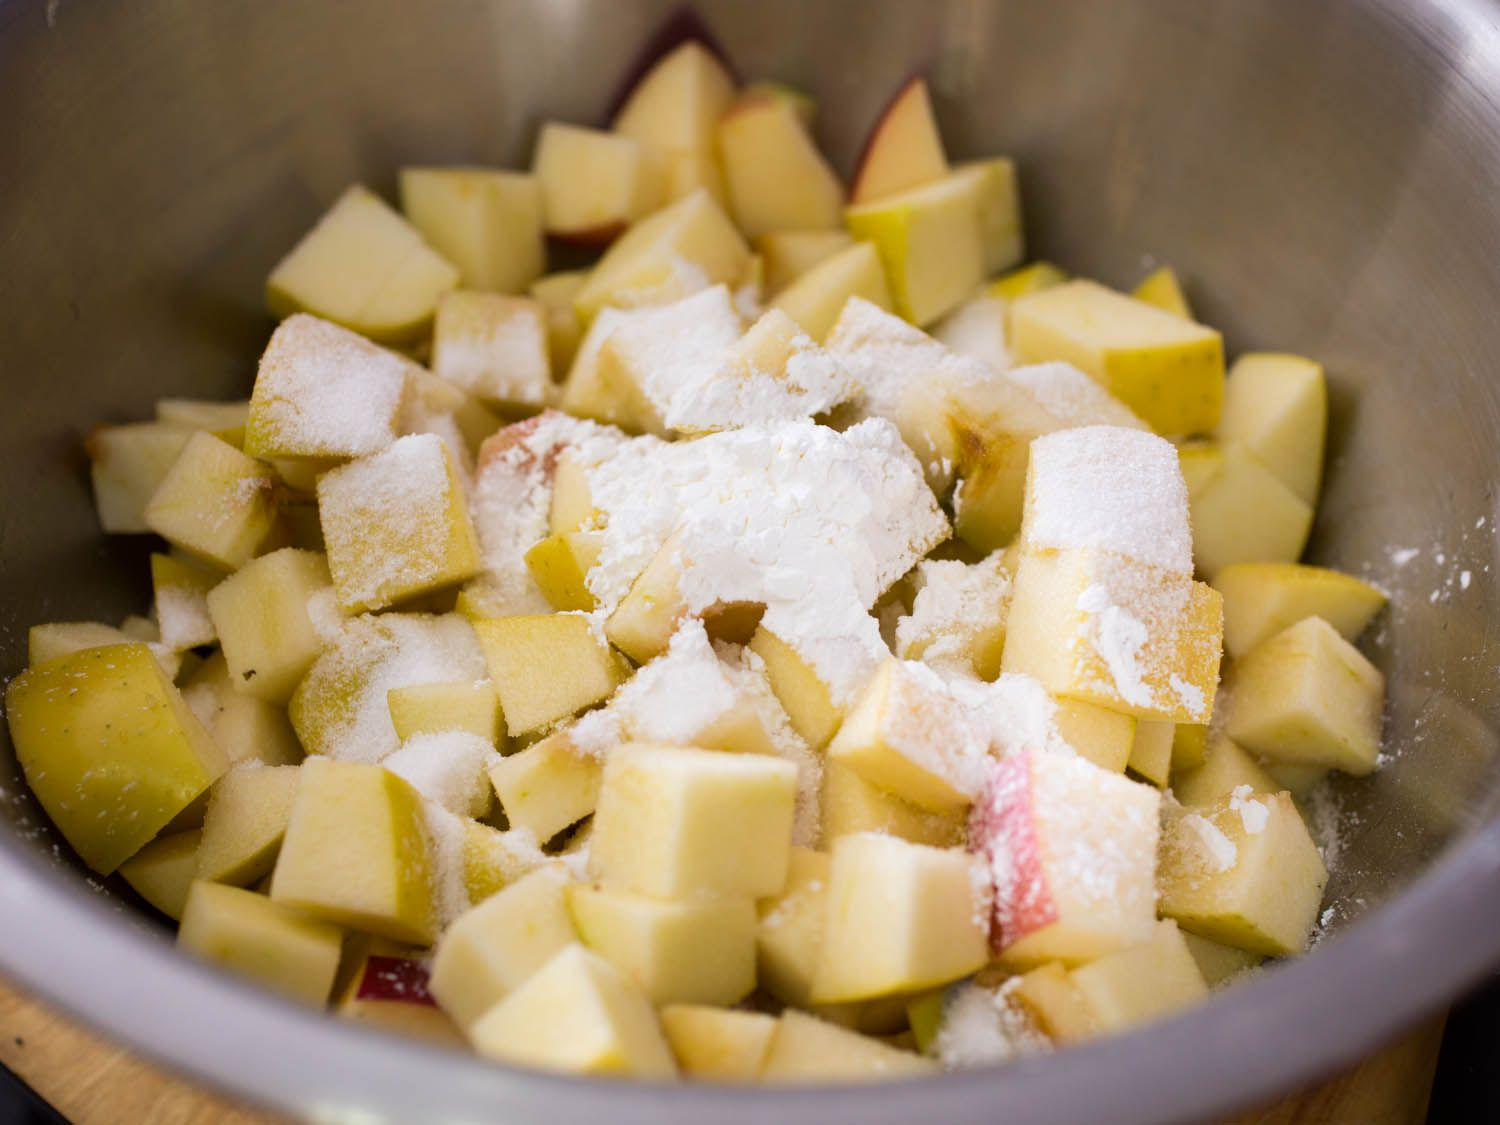 Chopped apple in a metal bowl with cornstarch and sugar sprinkled on top